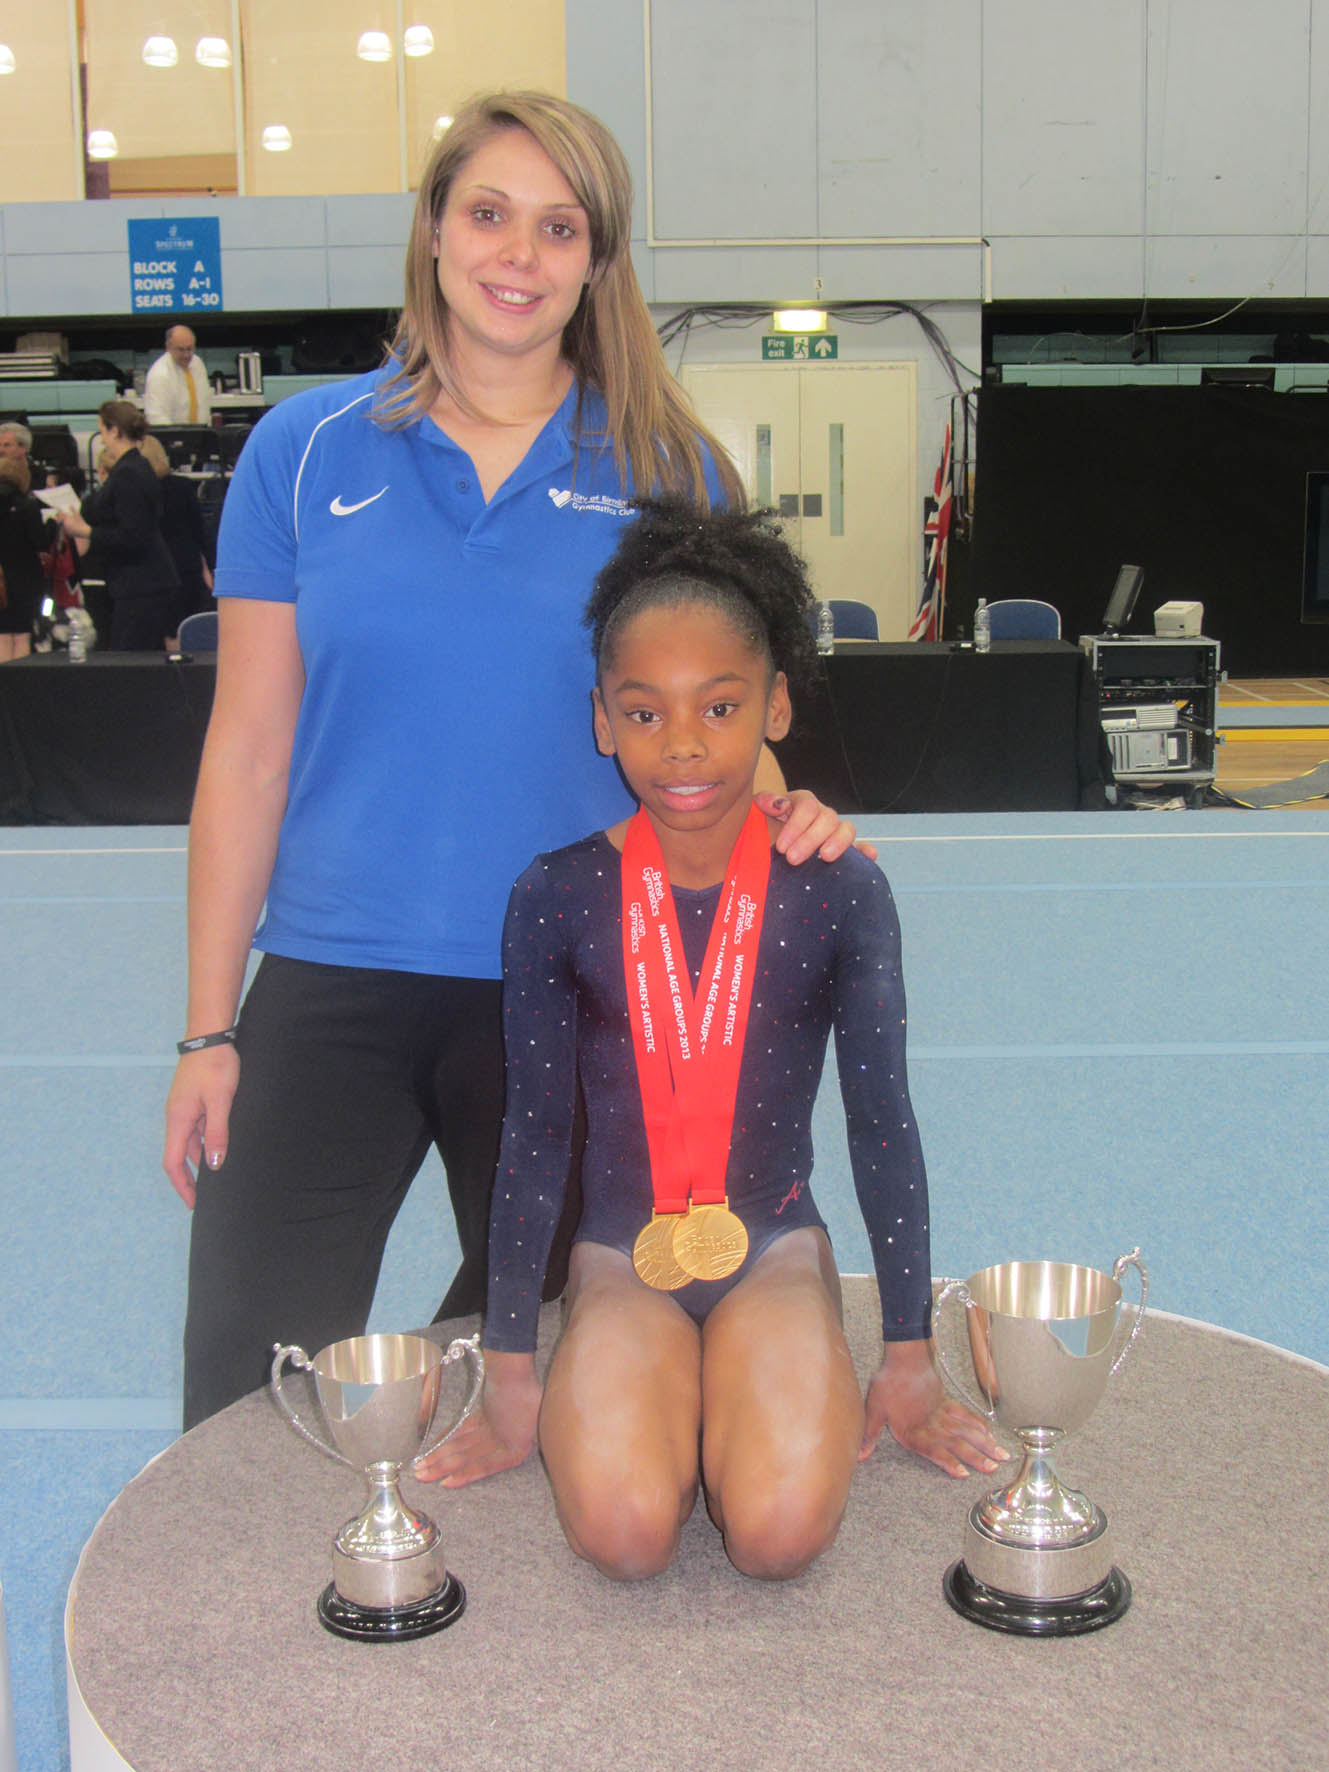 Triumphant Coach, Jody Kime, & gymnast Taeja with their British Championship trophies